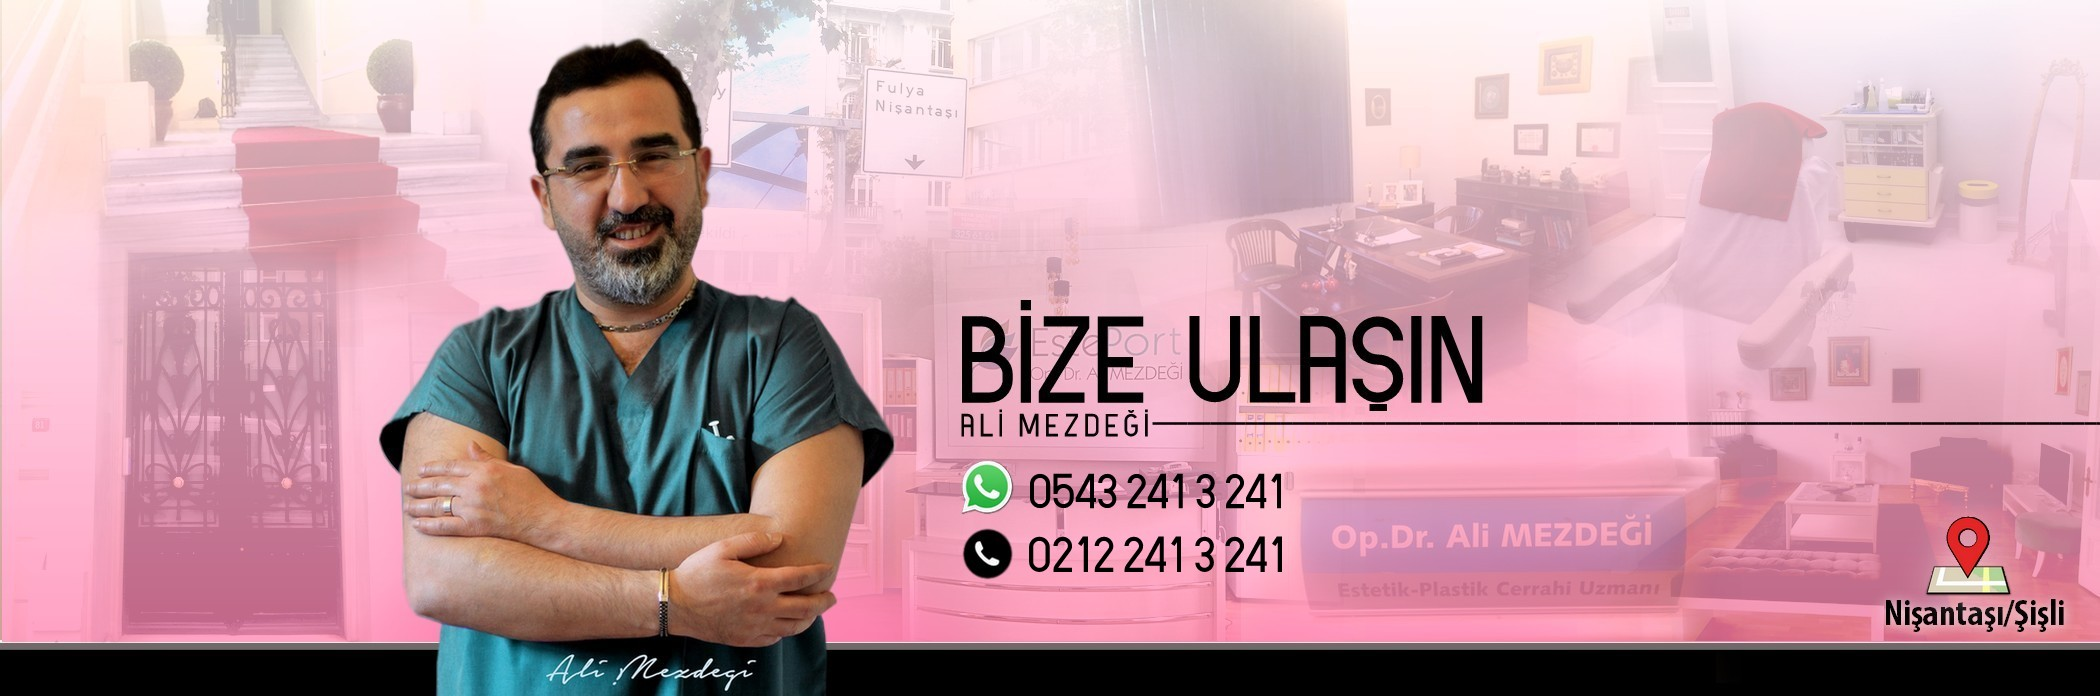 bize ulasin esteport